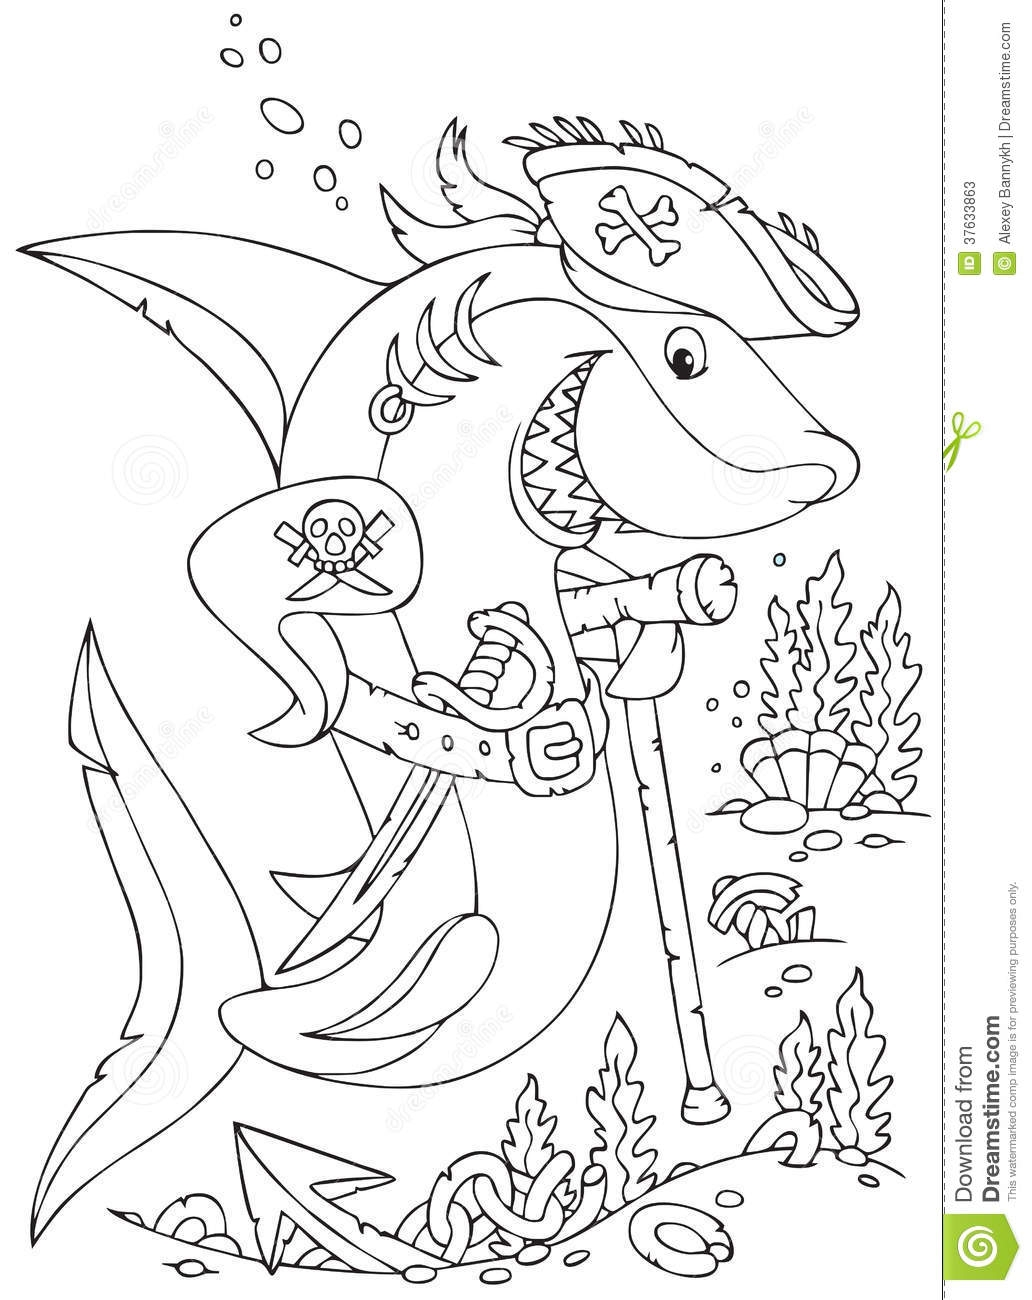 pirate ship coloring page - photos stock pirate de requin image